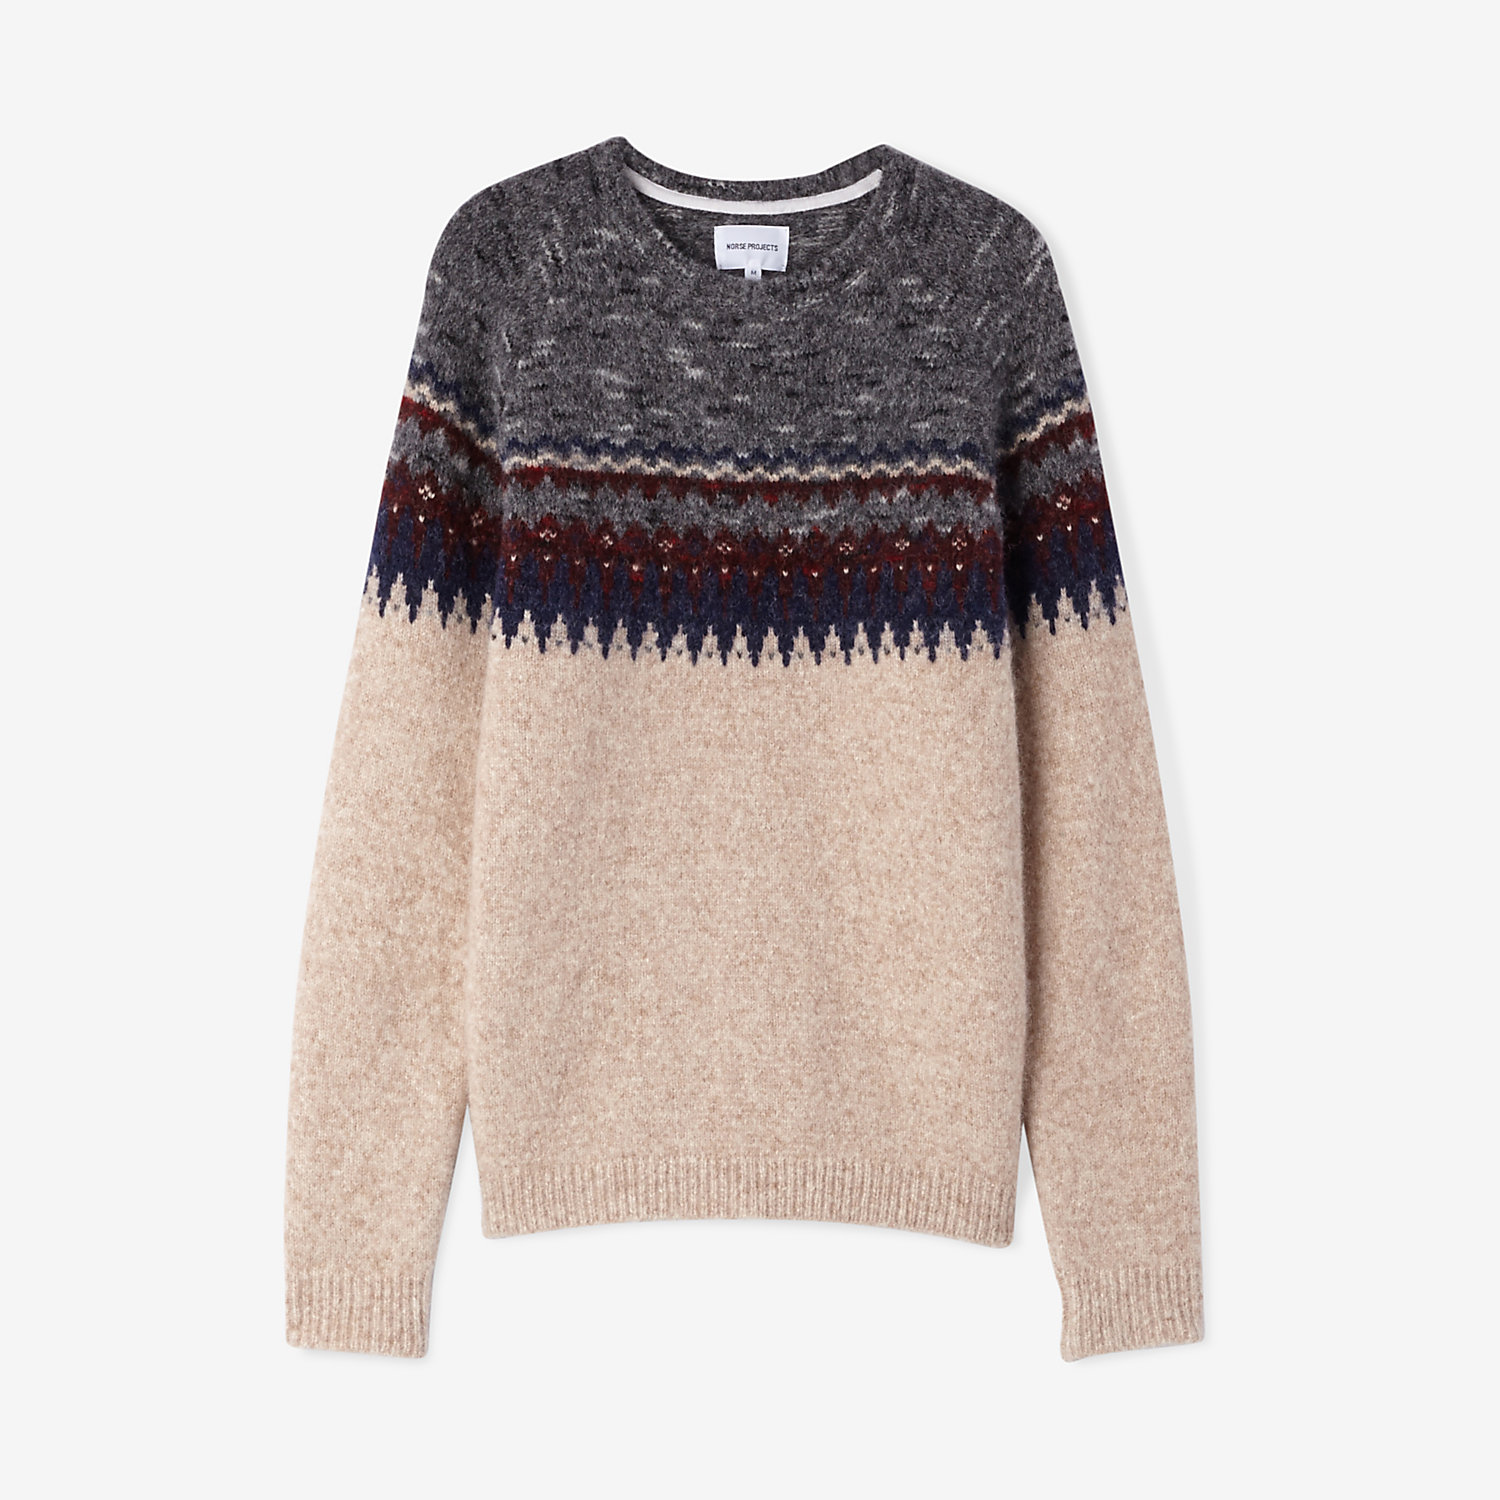 BIRNIR FAIRISLE ALPACA SWEATER